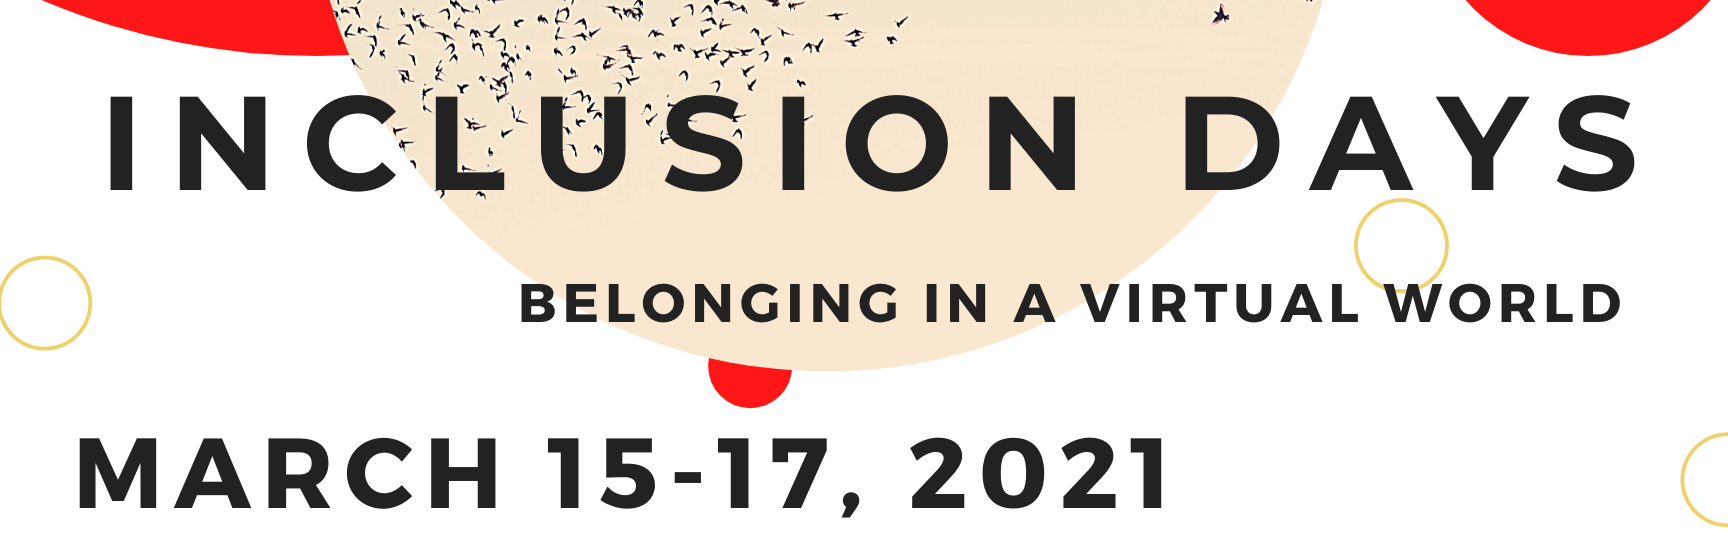 Inclusion Days 2021